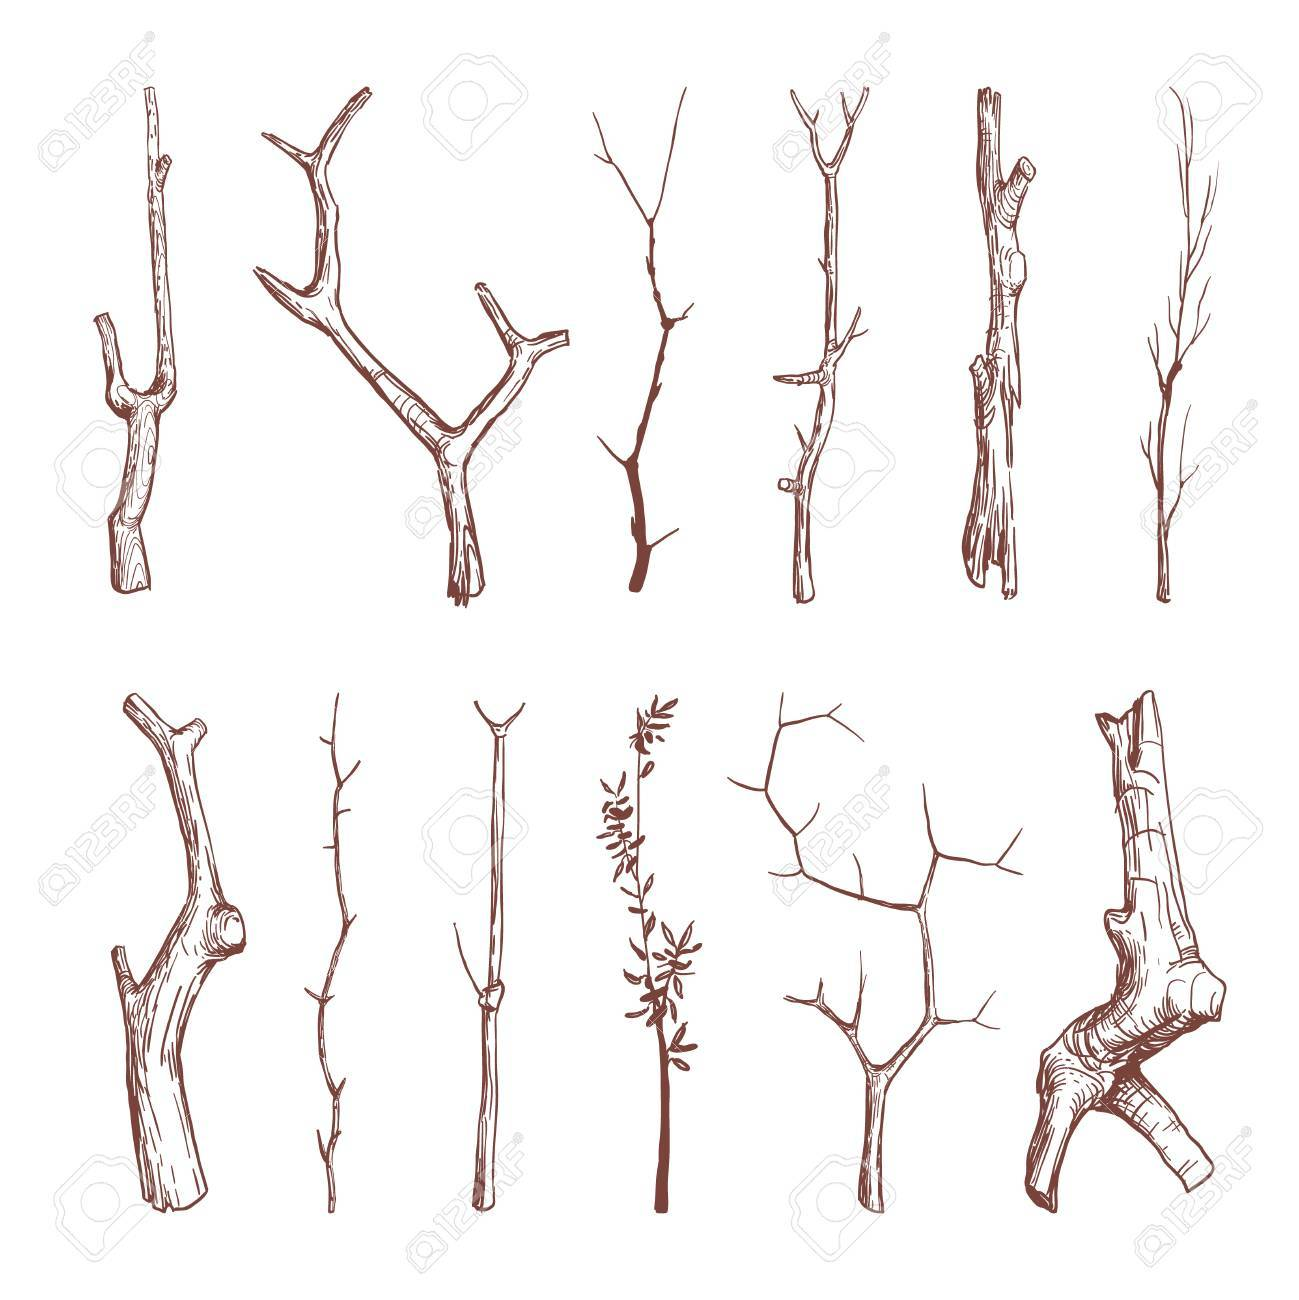 Hand Drawn Wood Twigs Wooden Sticks Tree Branches Vector Rustic Decoration Elements Set